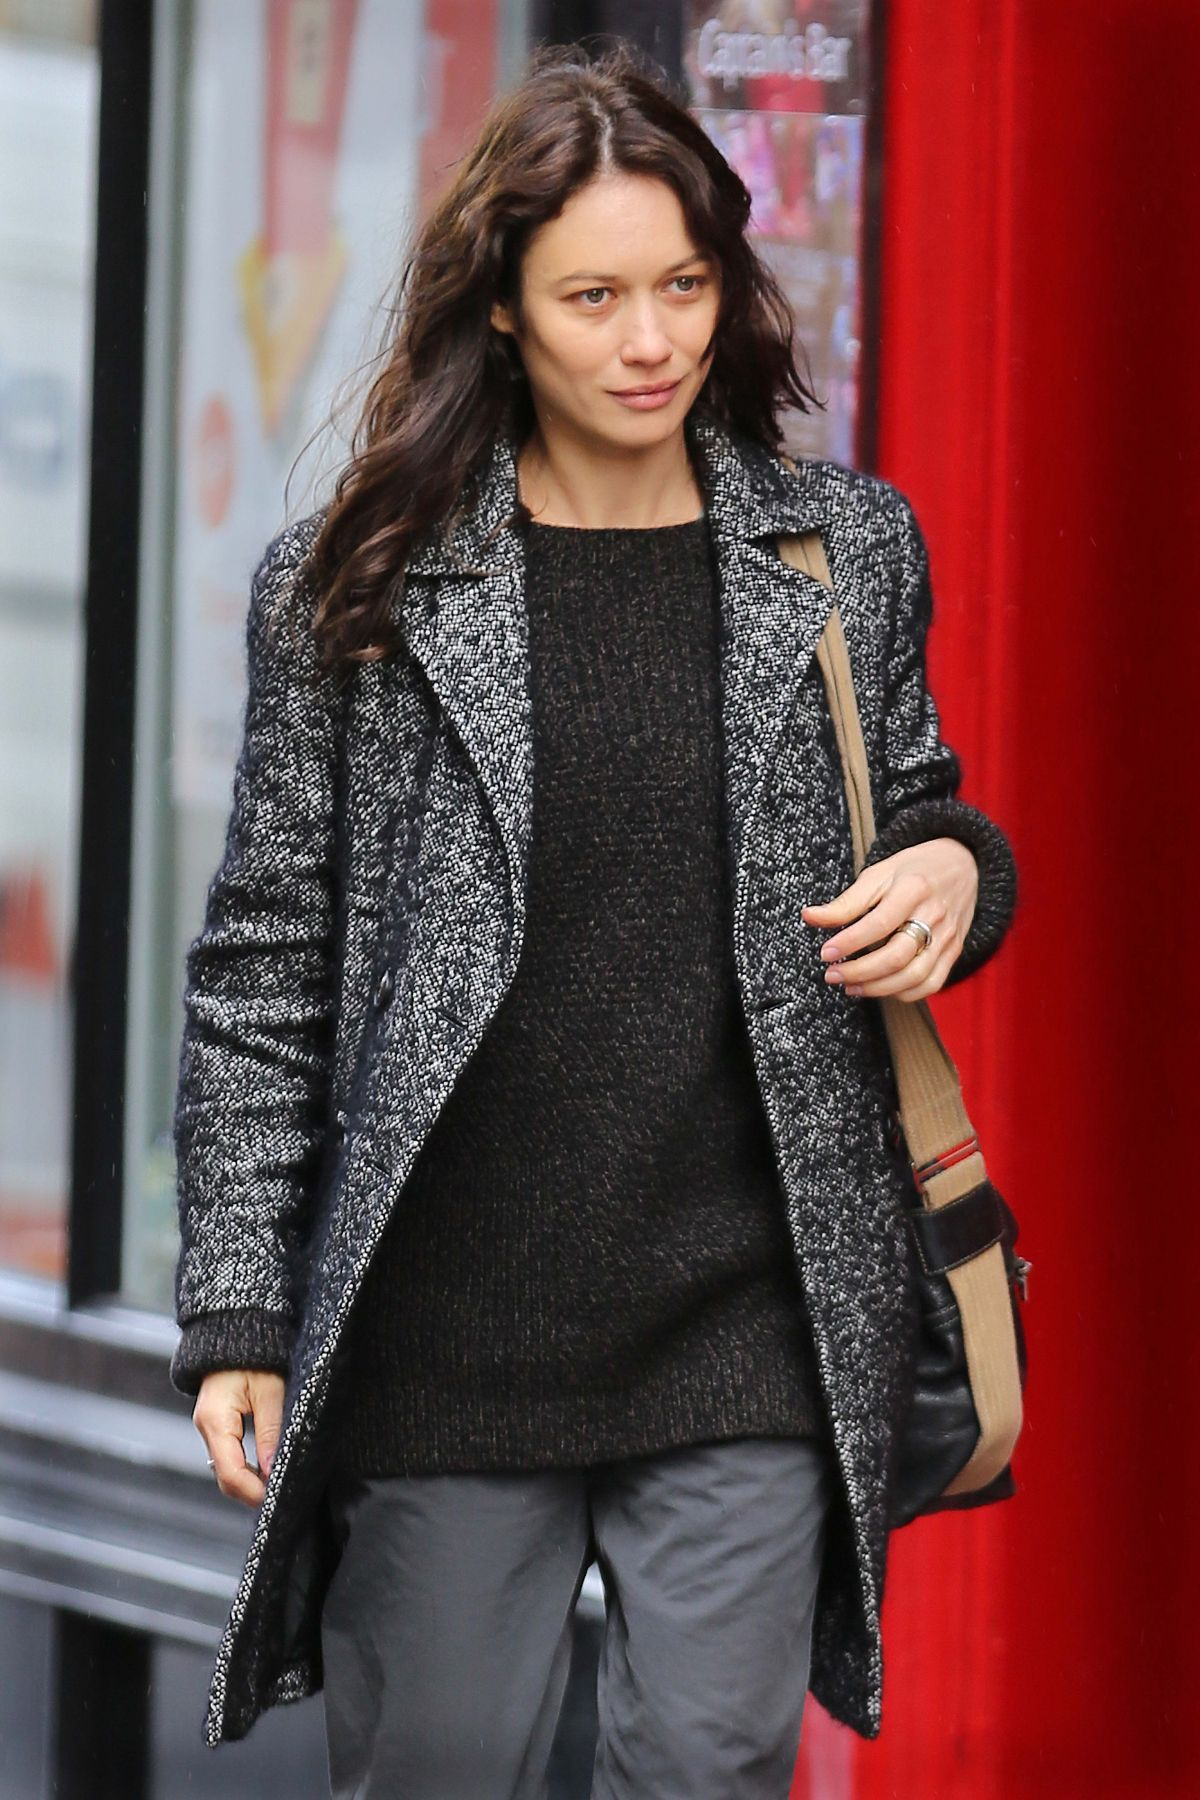 OLGA KURYLENKO on the Set of The Correspondence in Edinburgh 04/29/2015